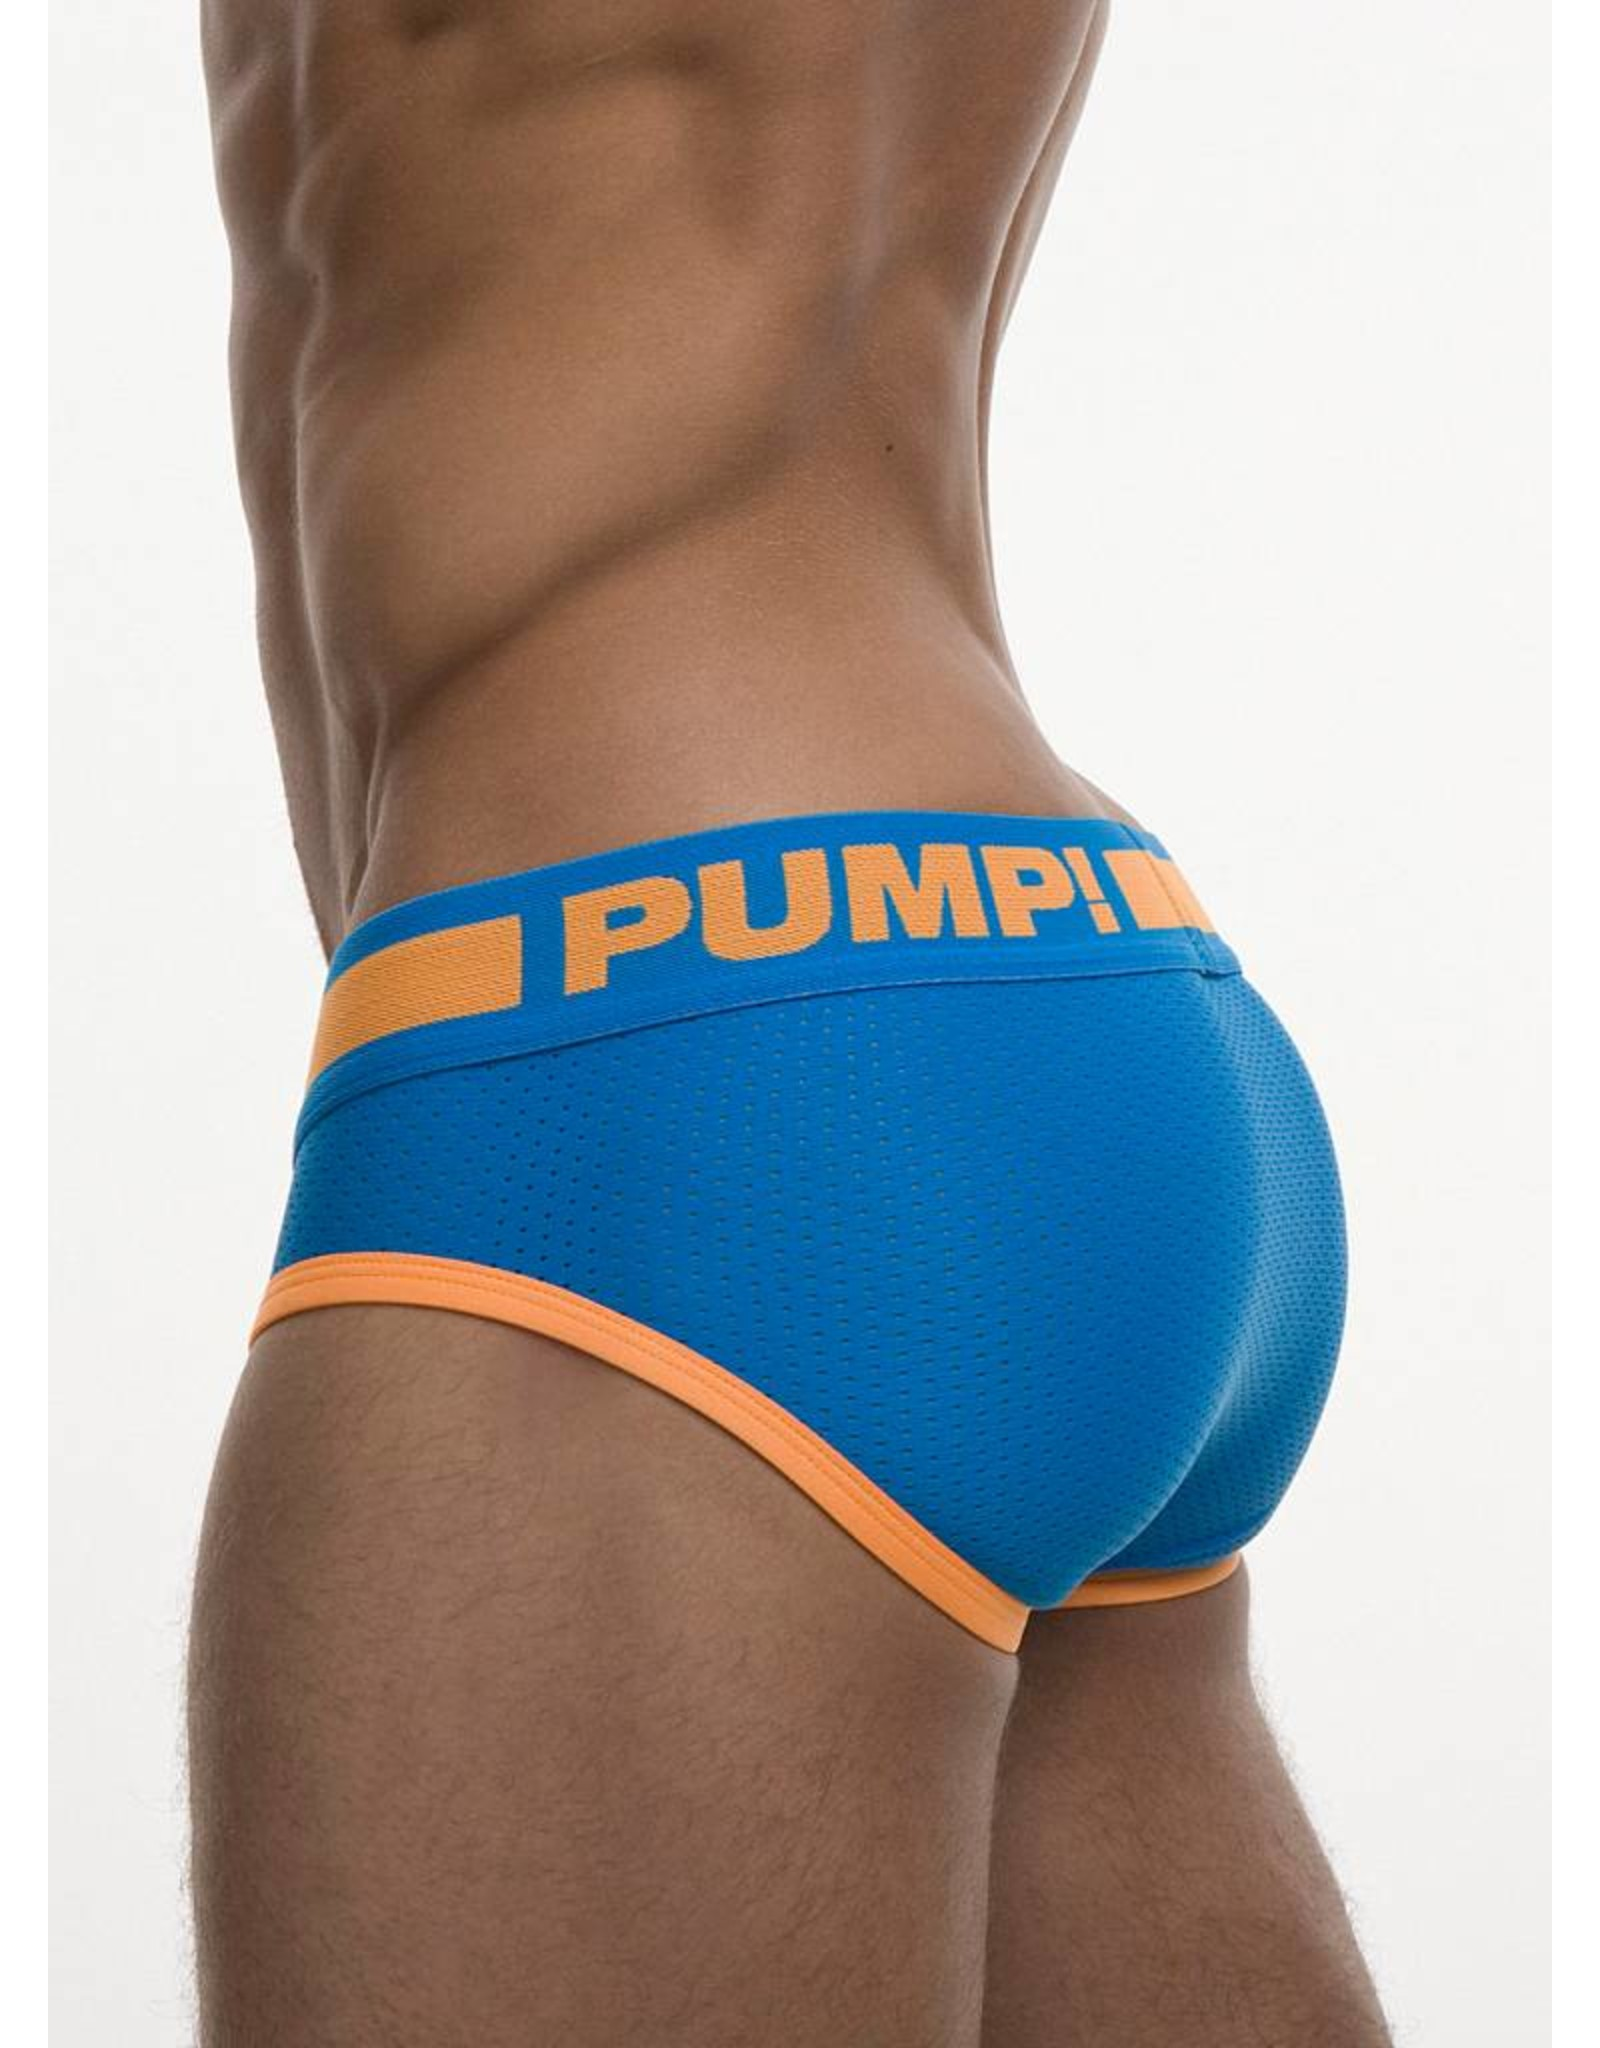 PUMP! PUMP! Cruise Brief